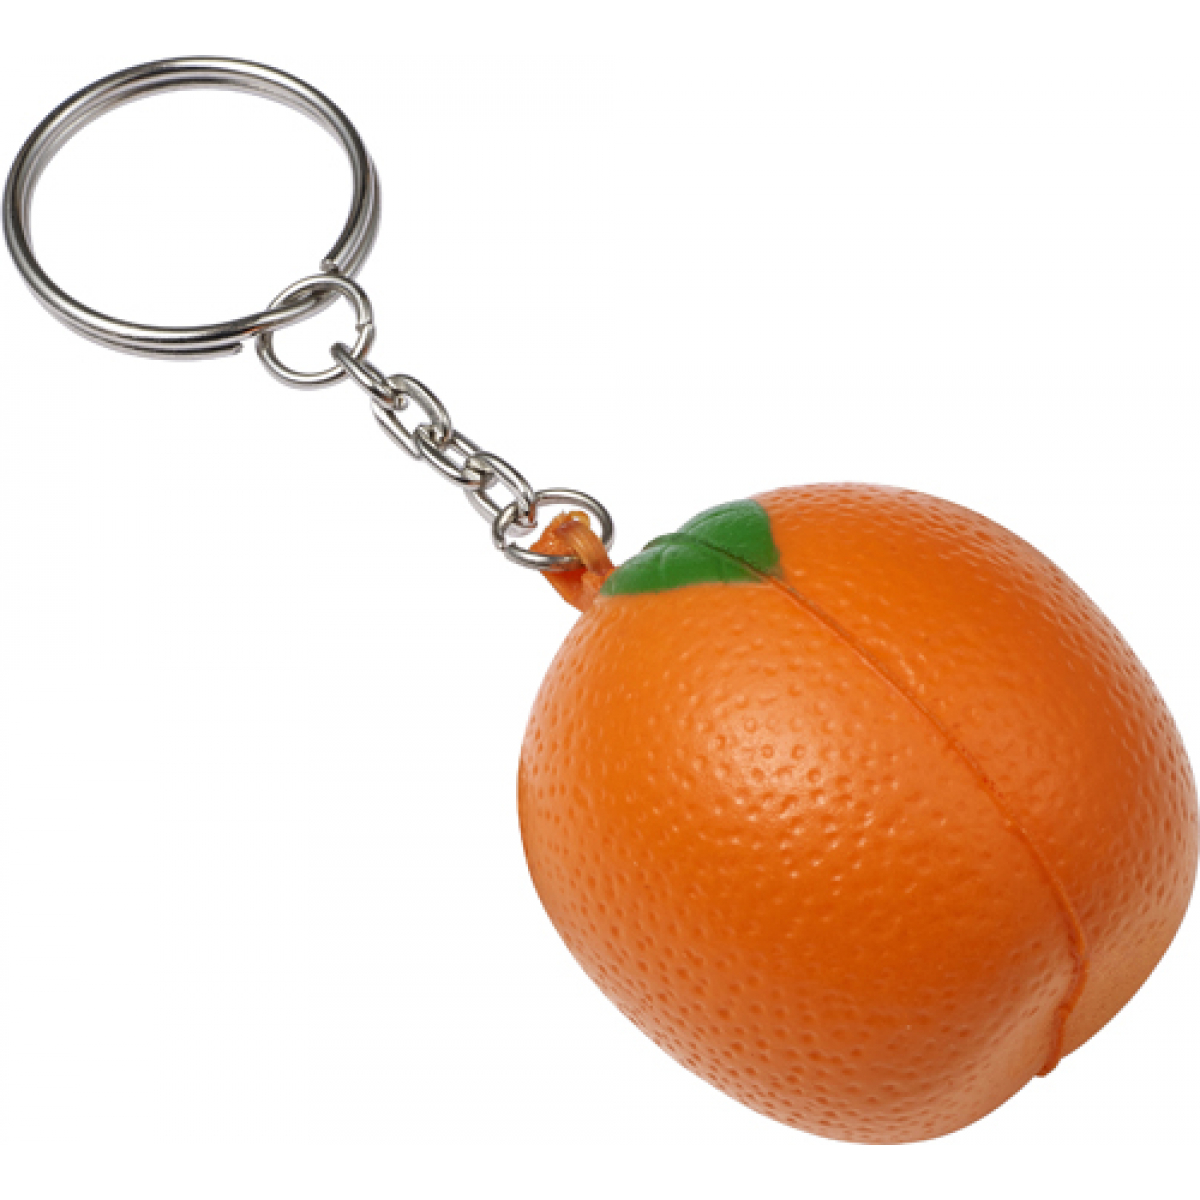 Anti-Stress Sleutelhanger | Fruit | PU foam